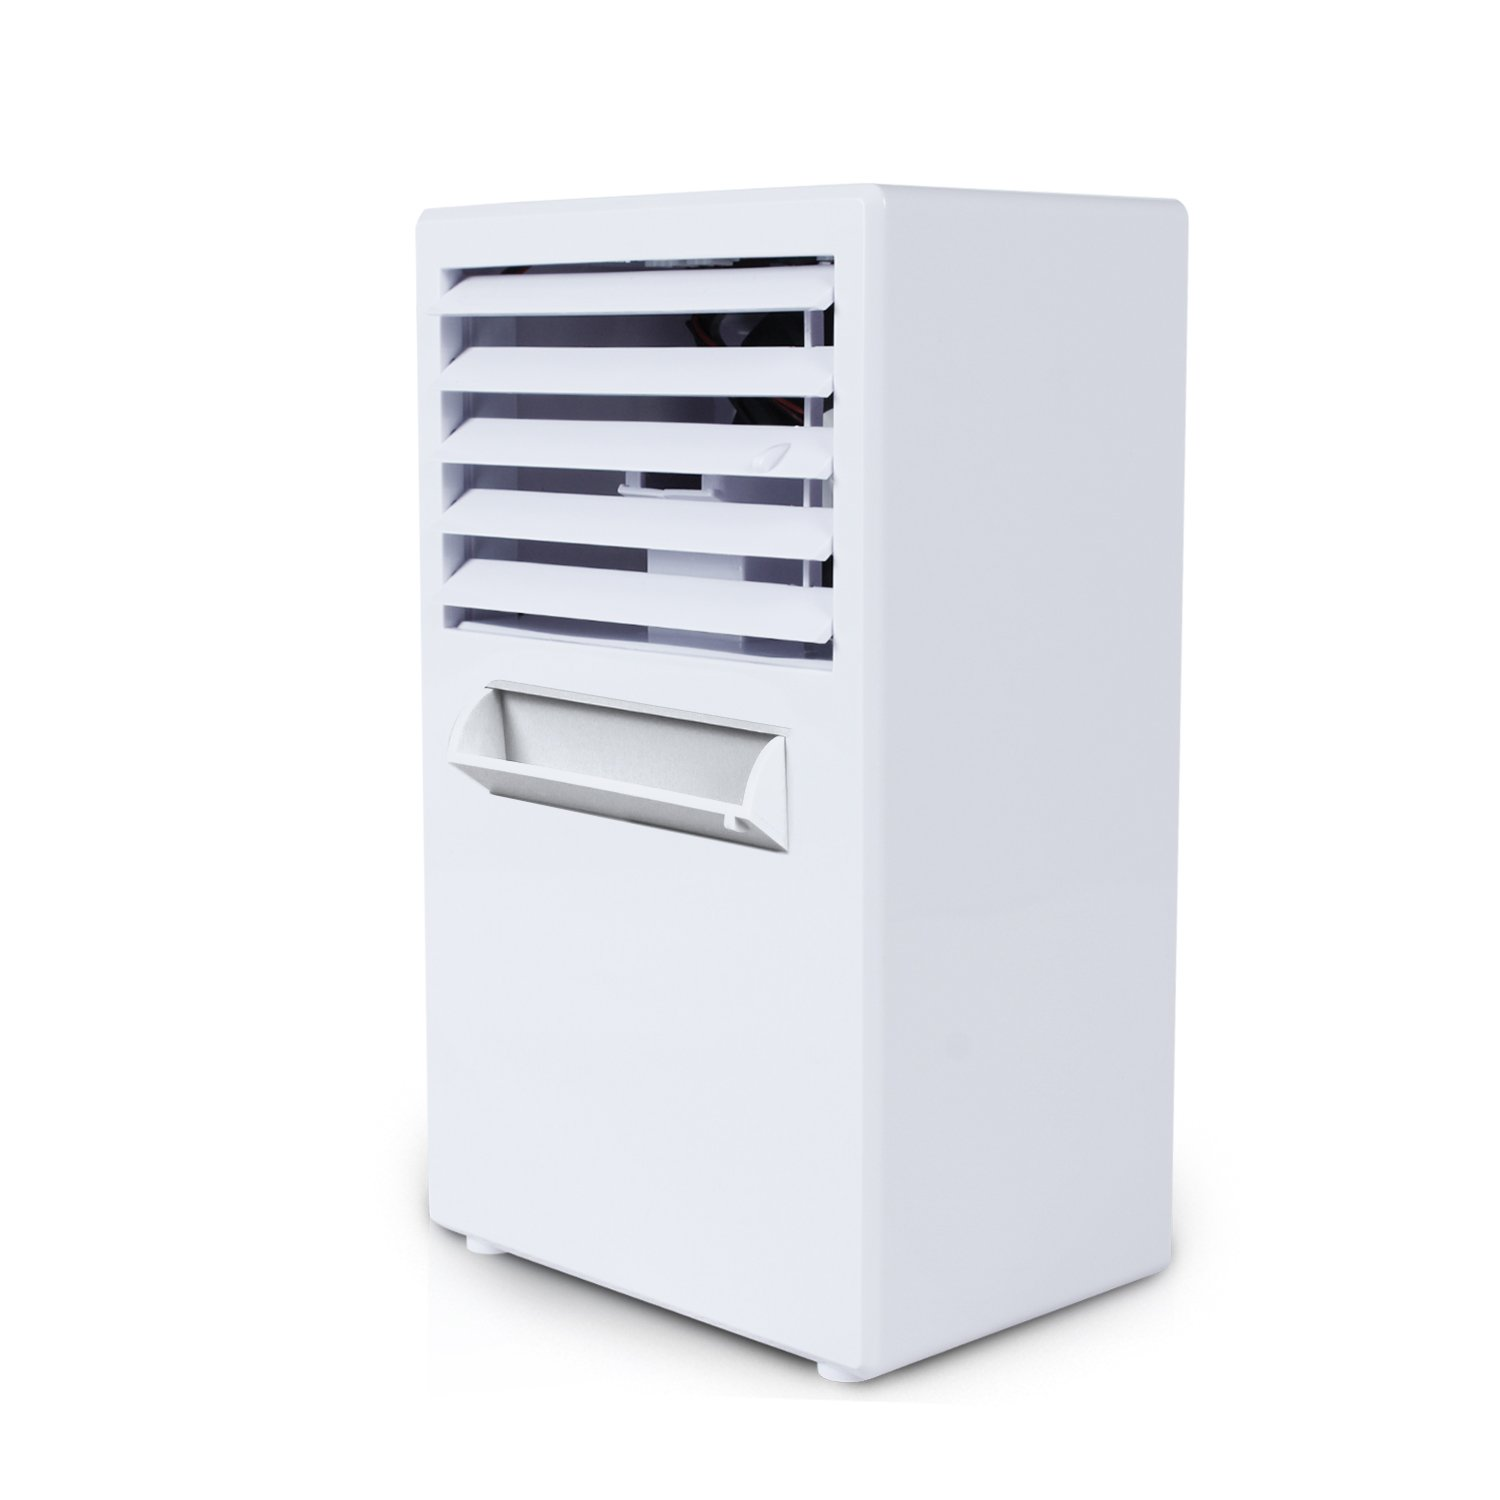 Fitfirst Portable Air Conditioner Fan, 3 in 1 Personal Space Air Cooler, Humidifier, Purifier, Desktop Cooling Fan Personal Table Fan Used Office Home Kitchen(White) 12F12